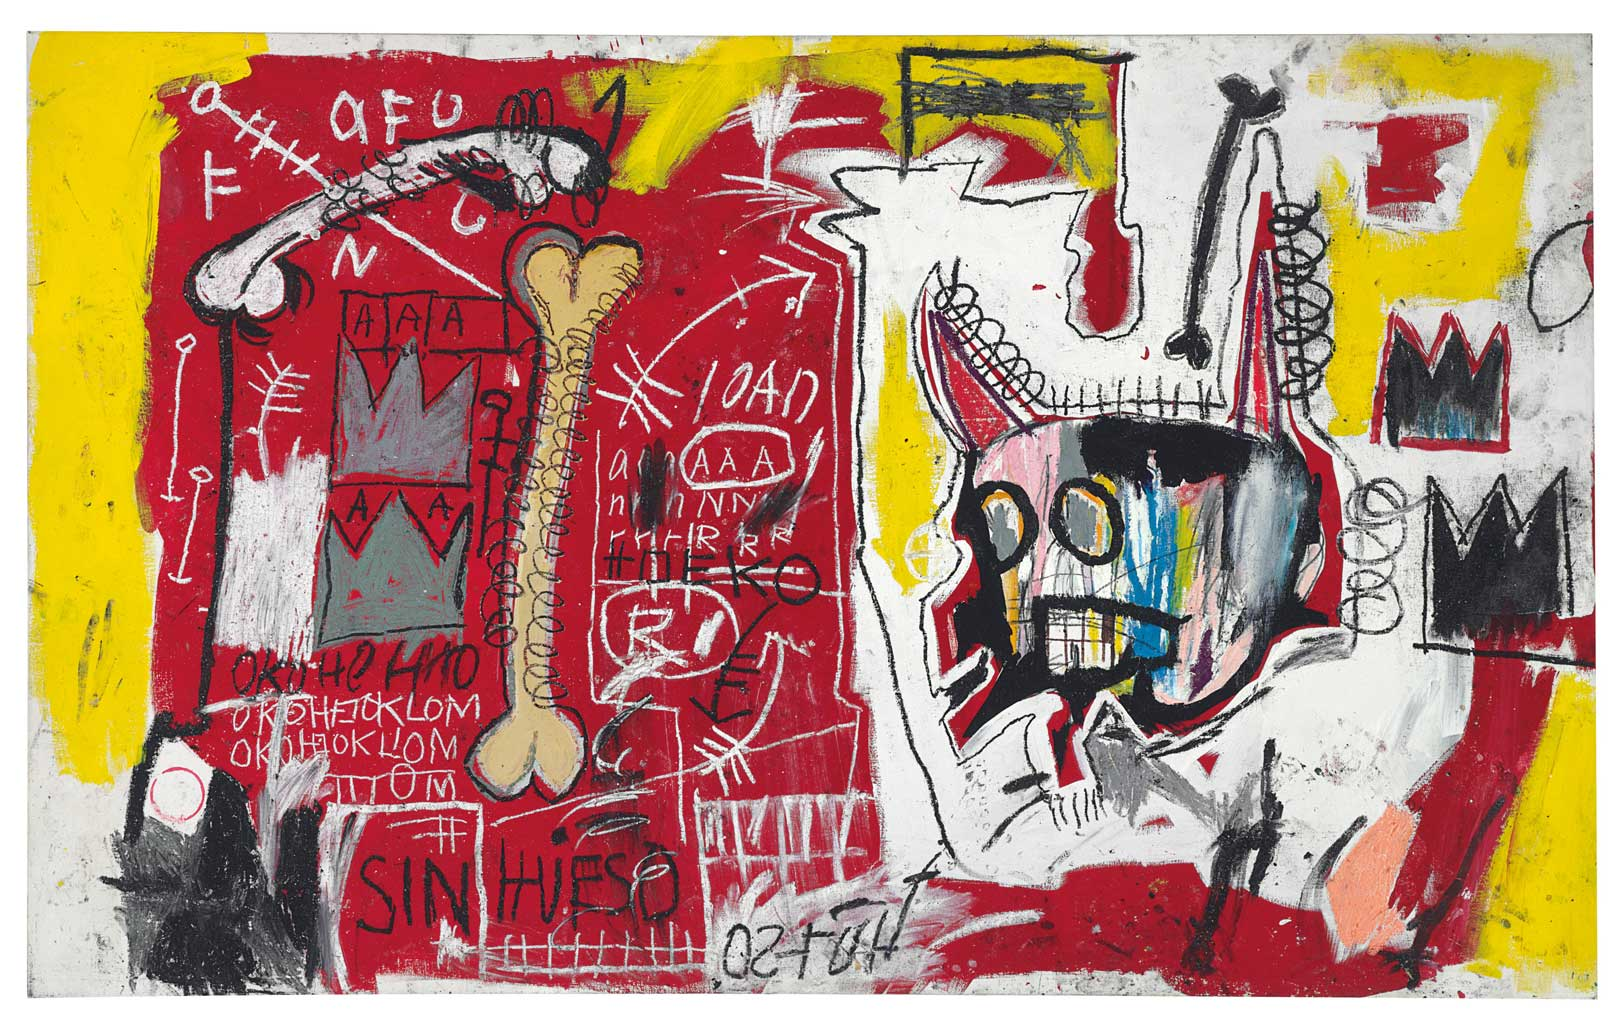 Do Not Revenge, 1982 Acrylic and oil stick on canvas, 132x213,3 cm Private collection © The Estate of Jean-Michel Basquiat by SIAE 2016